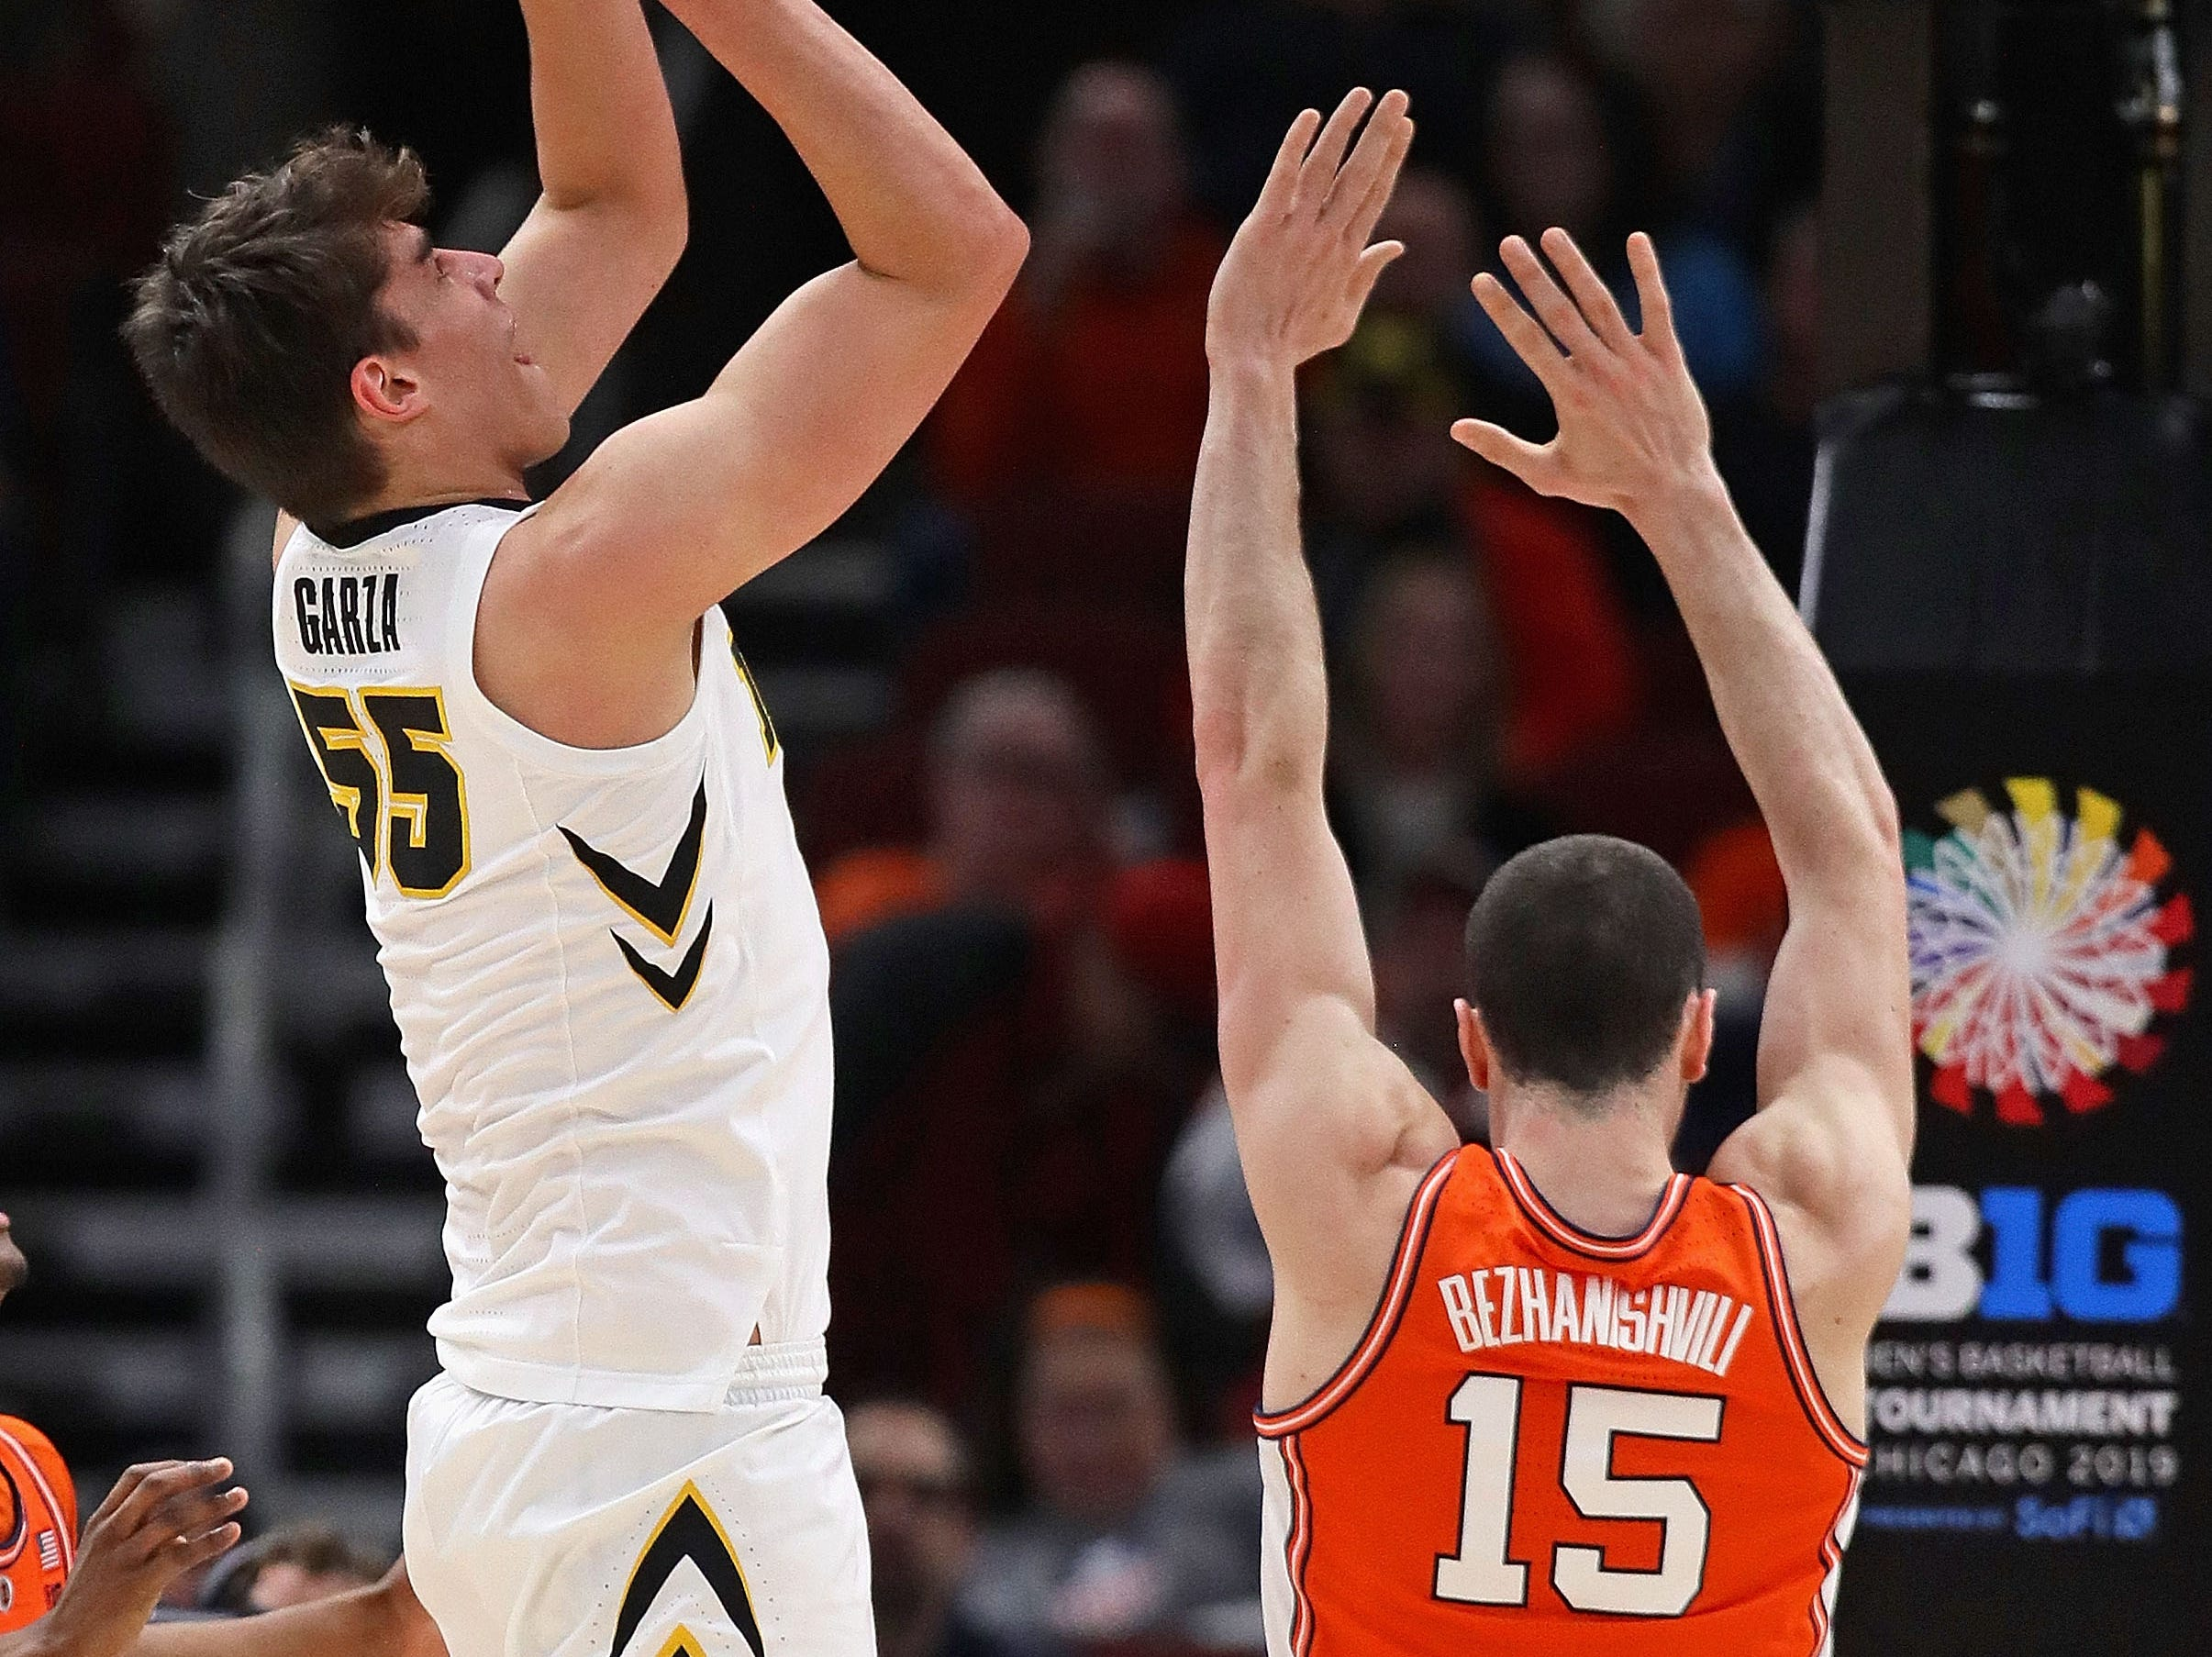 CHICAGO, ILLINOIS - MARCH 14: Luka Garza #55 of the Iowa Hawkeyes shoots over Giorgi Bezhanishvili #15 of the Illinois Fighting Illini at the United Center on March 14, 2019 in Chicago, Illinois.  (Photo by Jonathan Daniel/Getty Images)